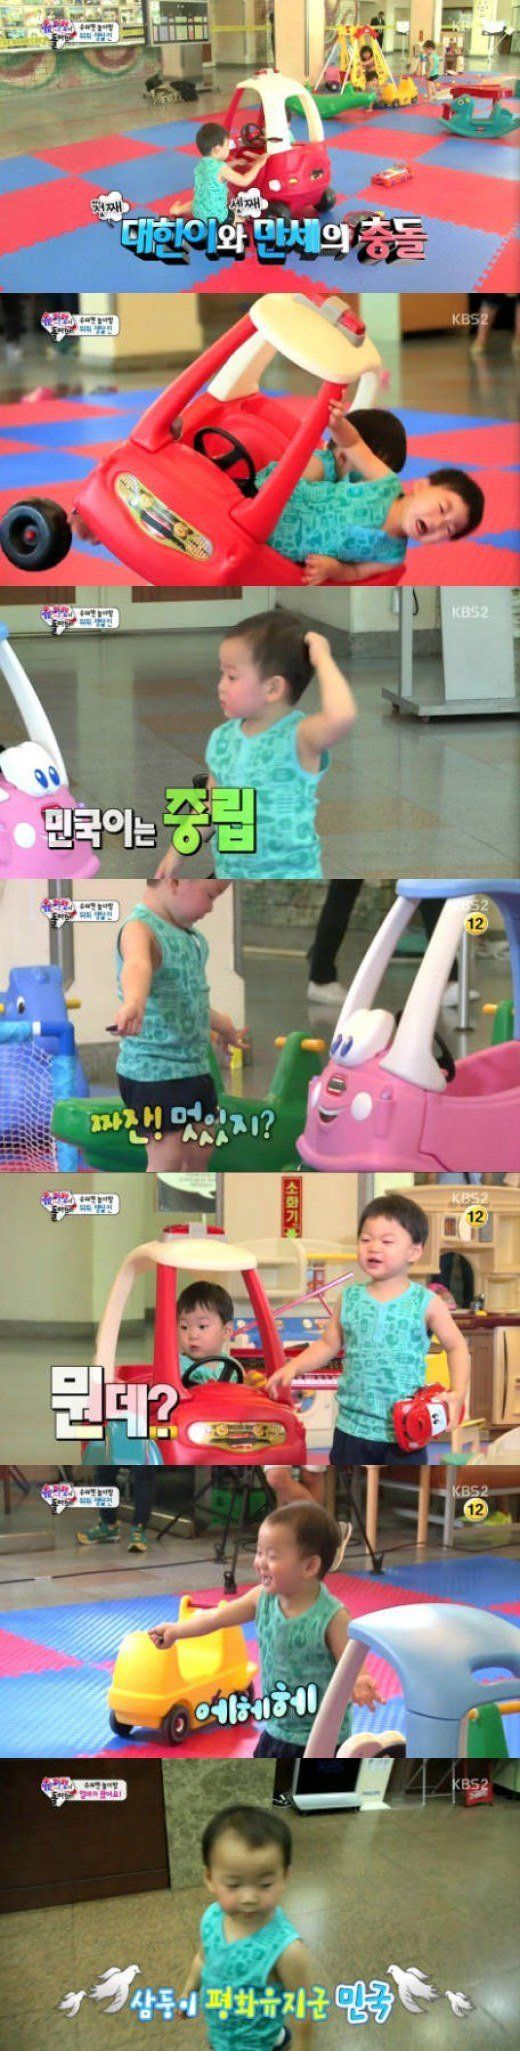 "On the September 14 broadcast of KBS' ""Superman Returns,"" actor Song Il Gook's triplets Dae Han, Min Gook, and Man Se, as well as Lee Hwi Jae's twins Seo Un and Seo Jun, were caught fighting over a toy car. The war over the toy car began while Min Gook was playing inside the car, when Seo Un went ov..."